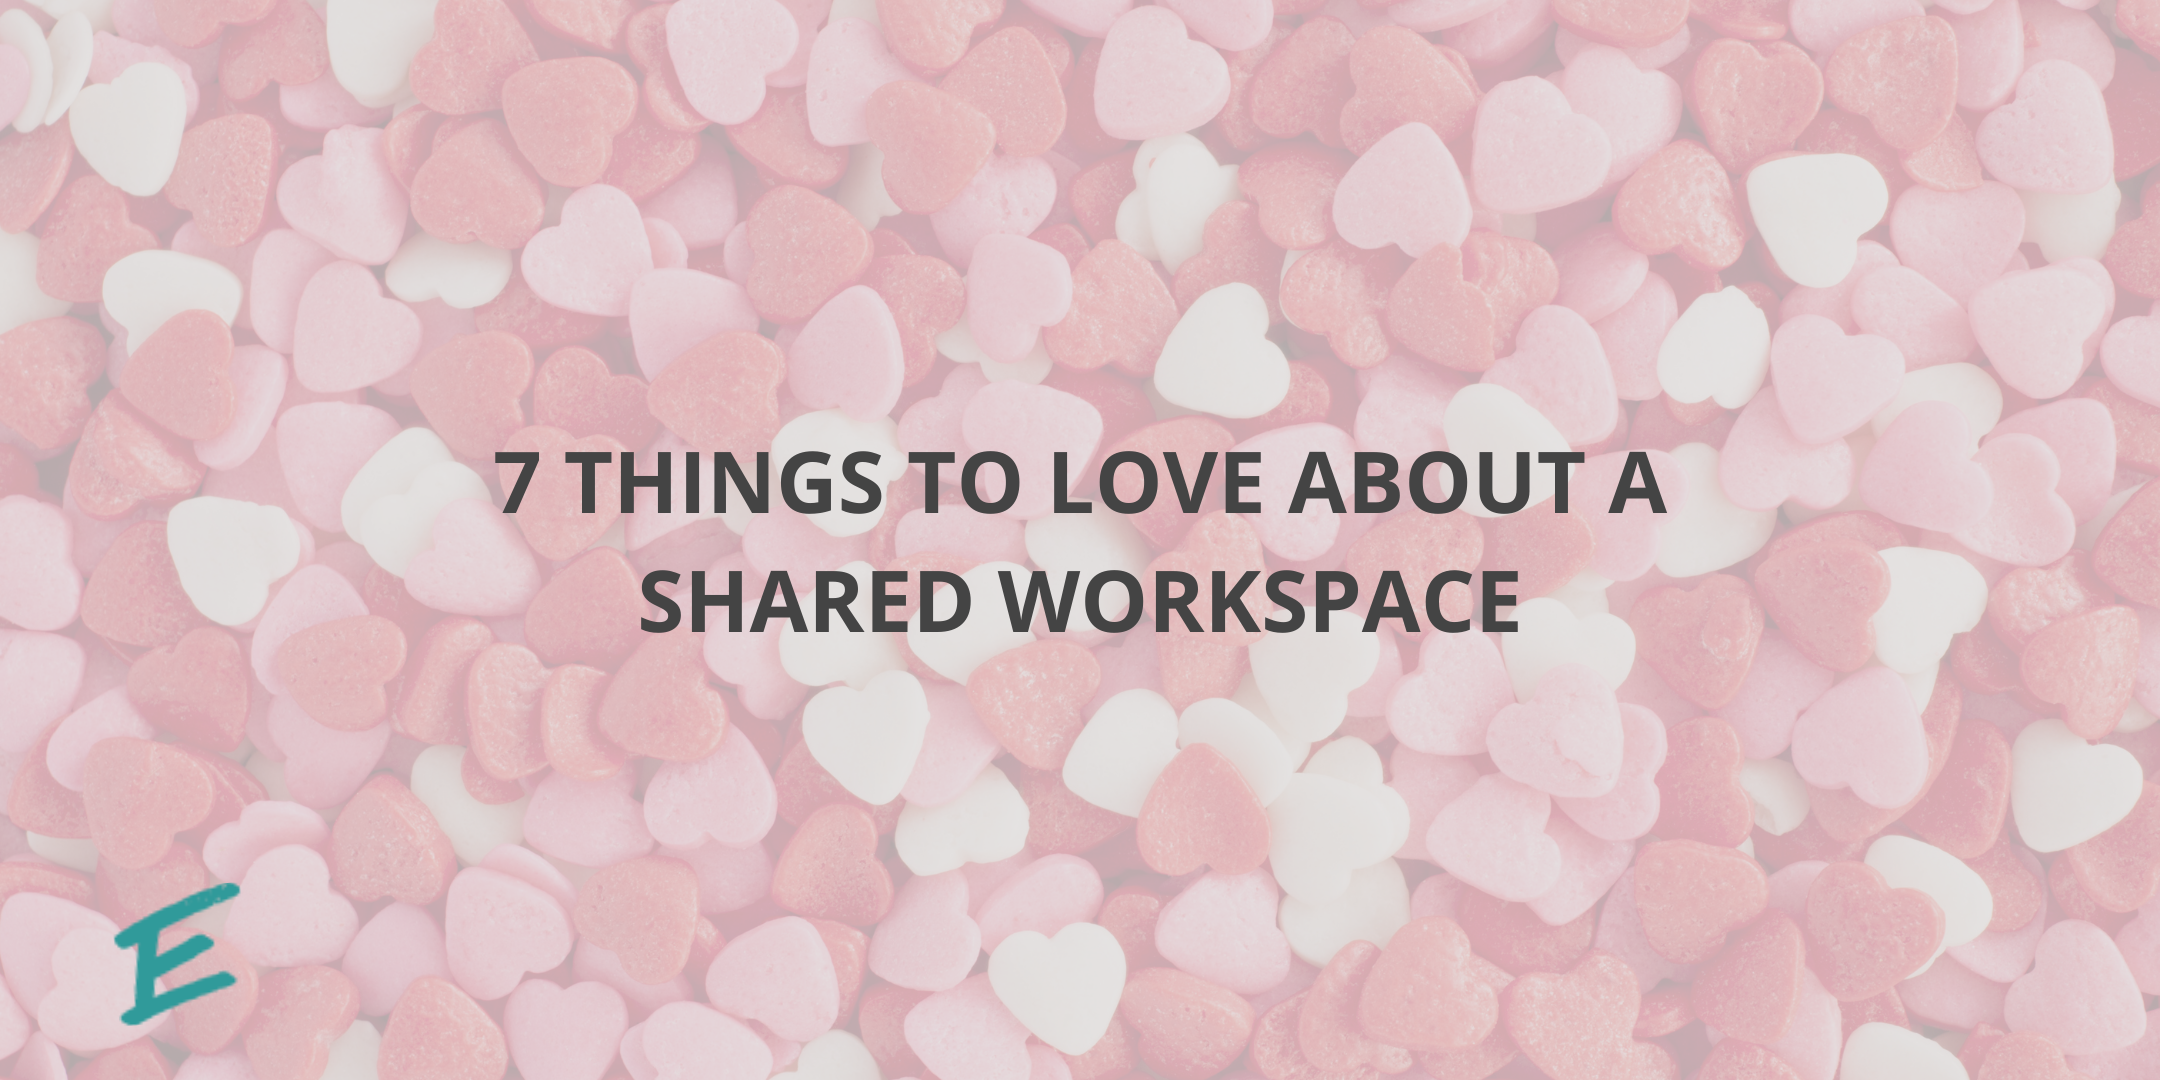 7-things-to-love-about-a-shared-workspace